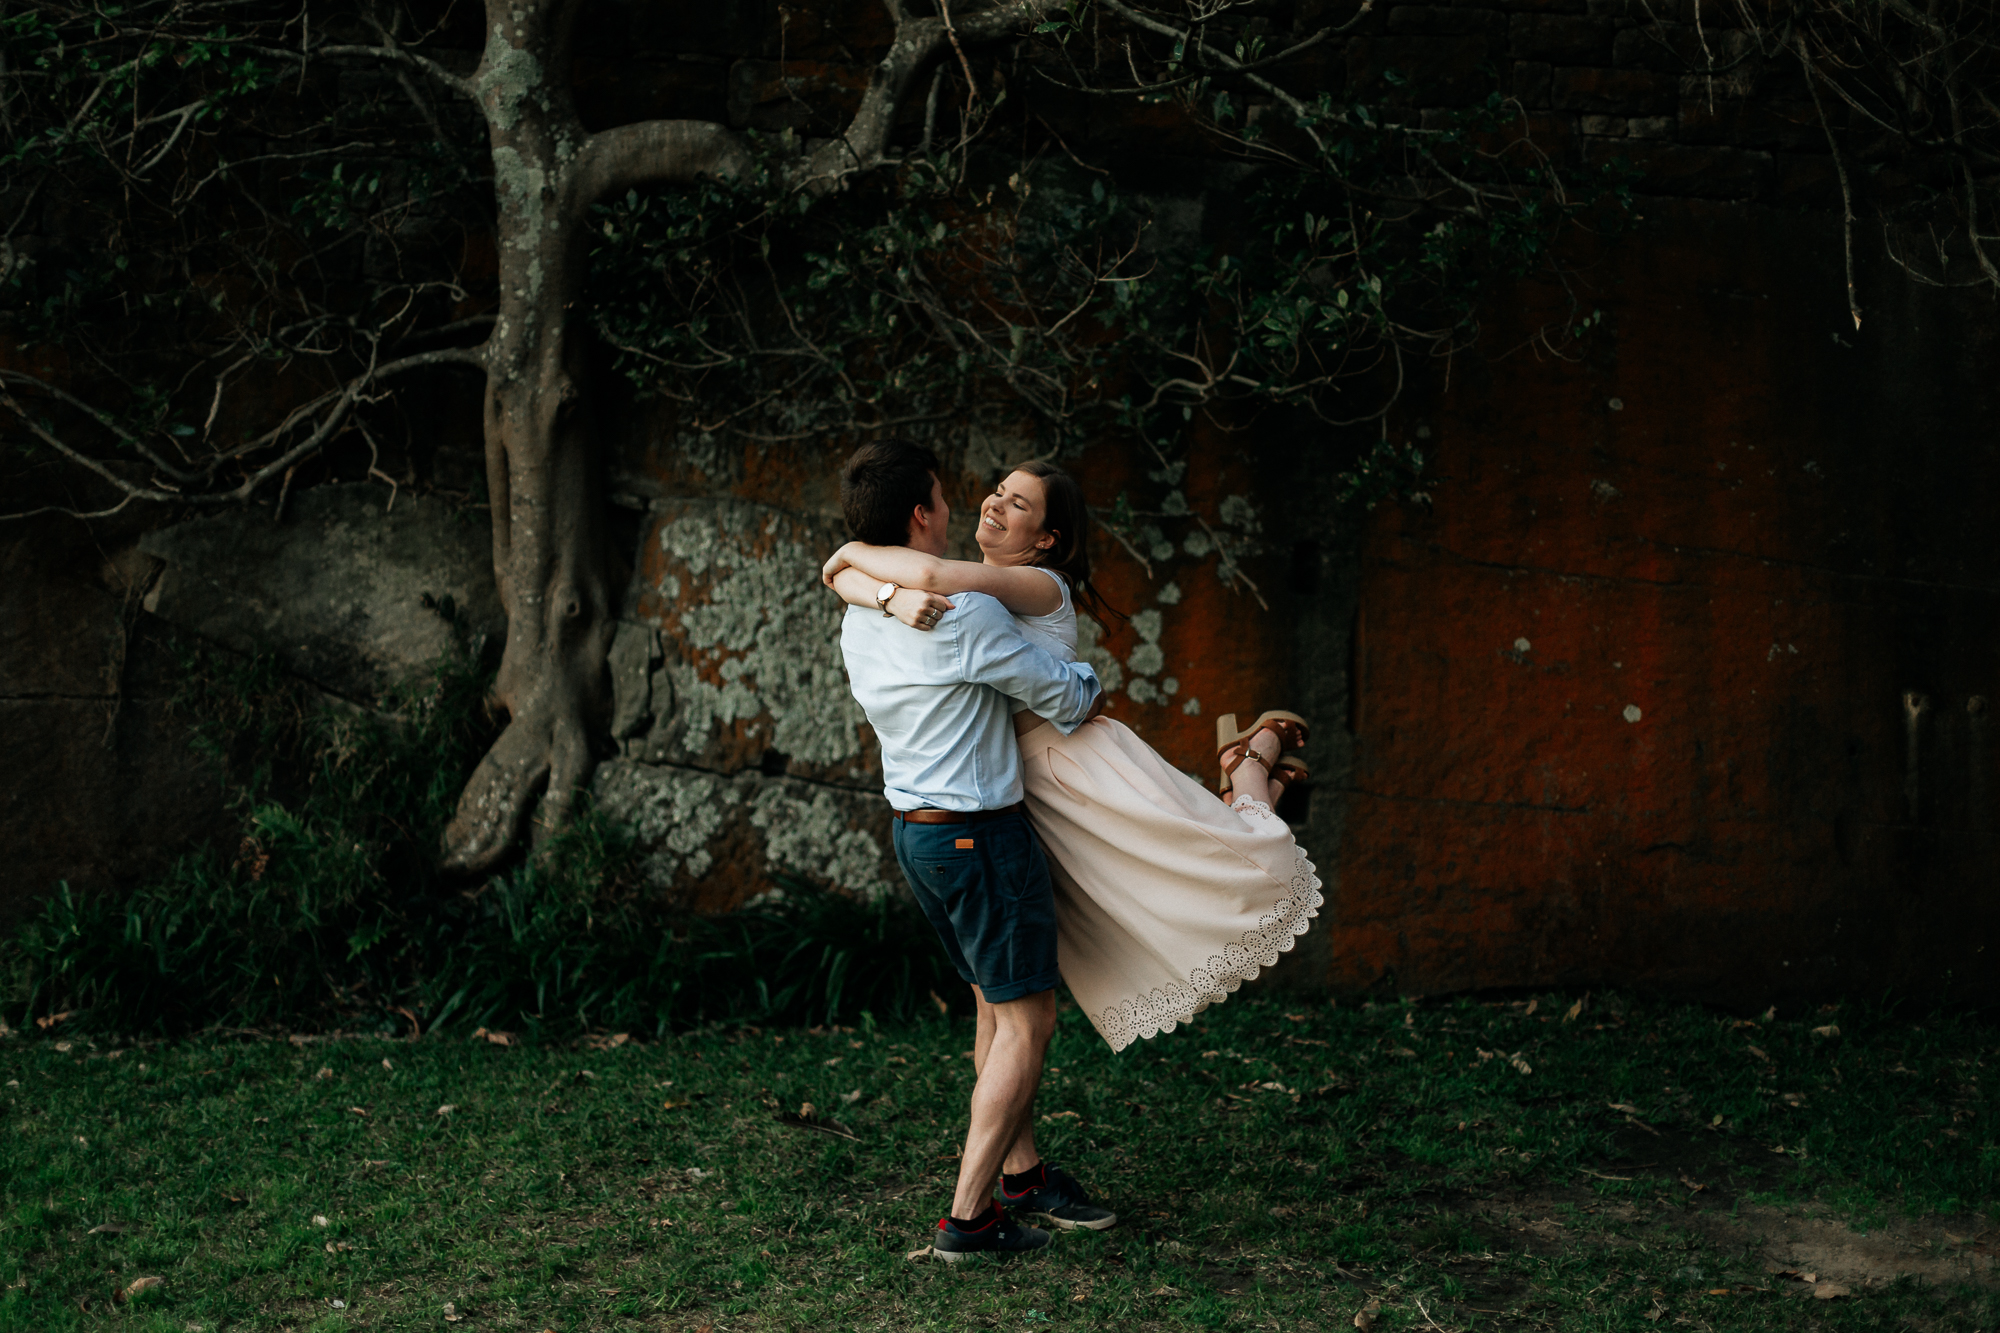 Amanzi and Steven_Engagement_Sydney_Holly Medway Photography-51.JPG